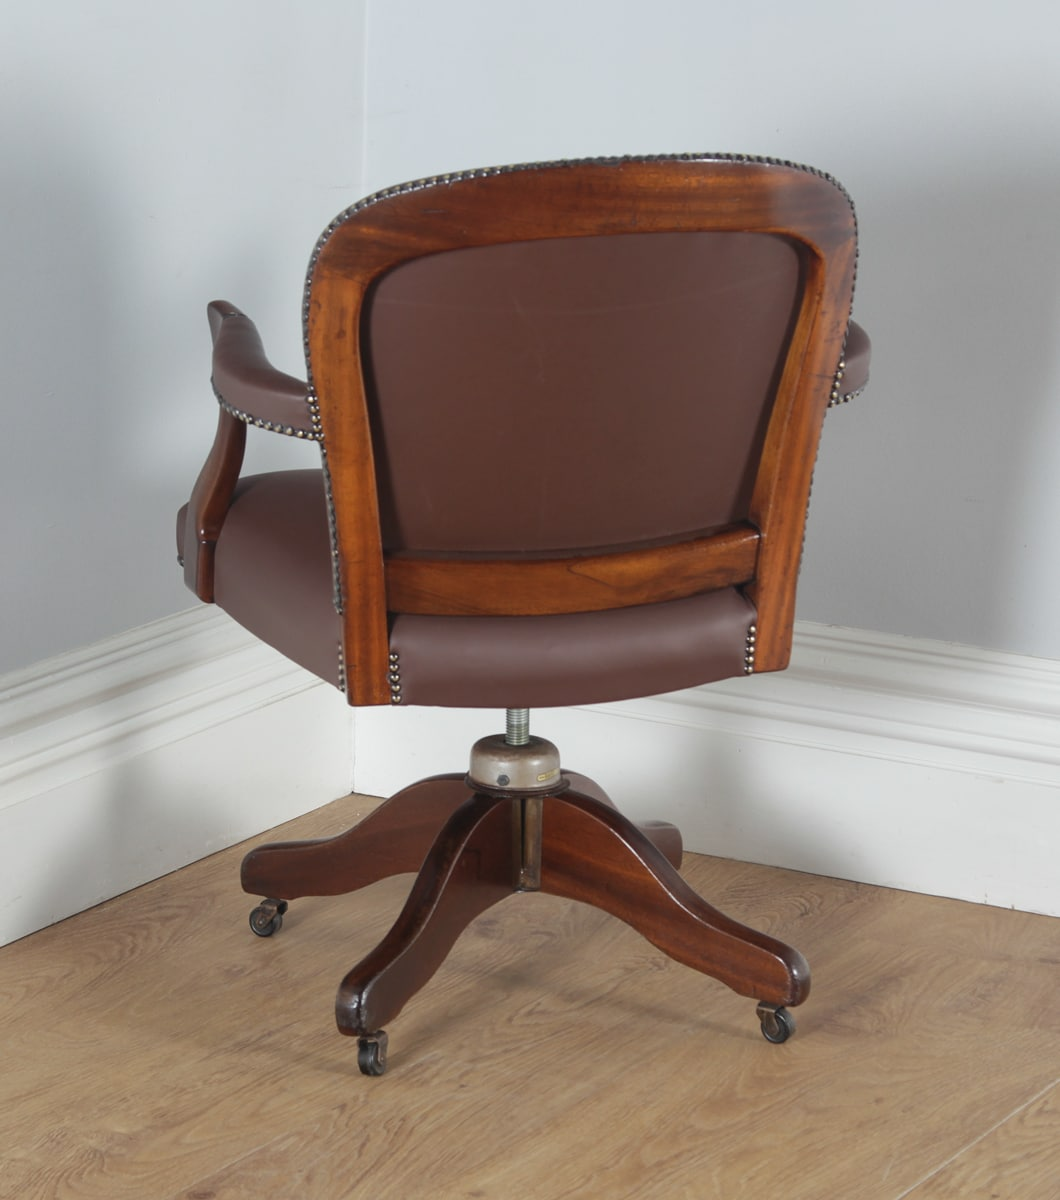 antique mahogany leather revolving office desk chair by maple co